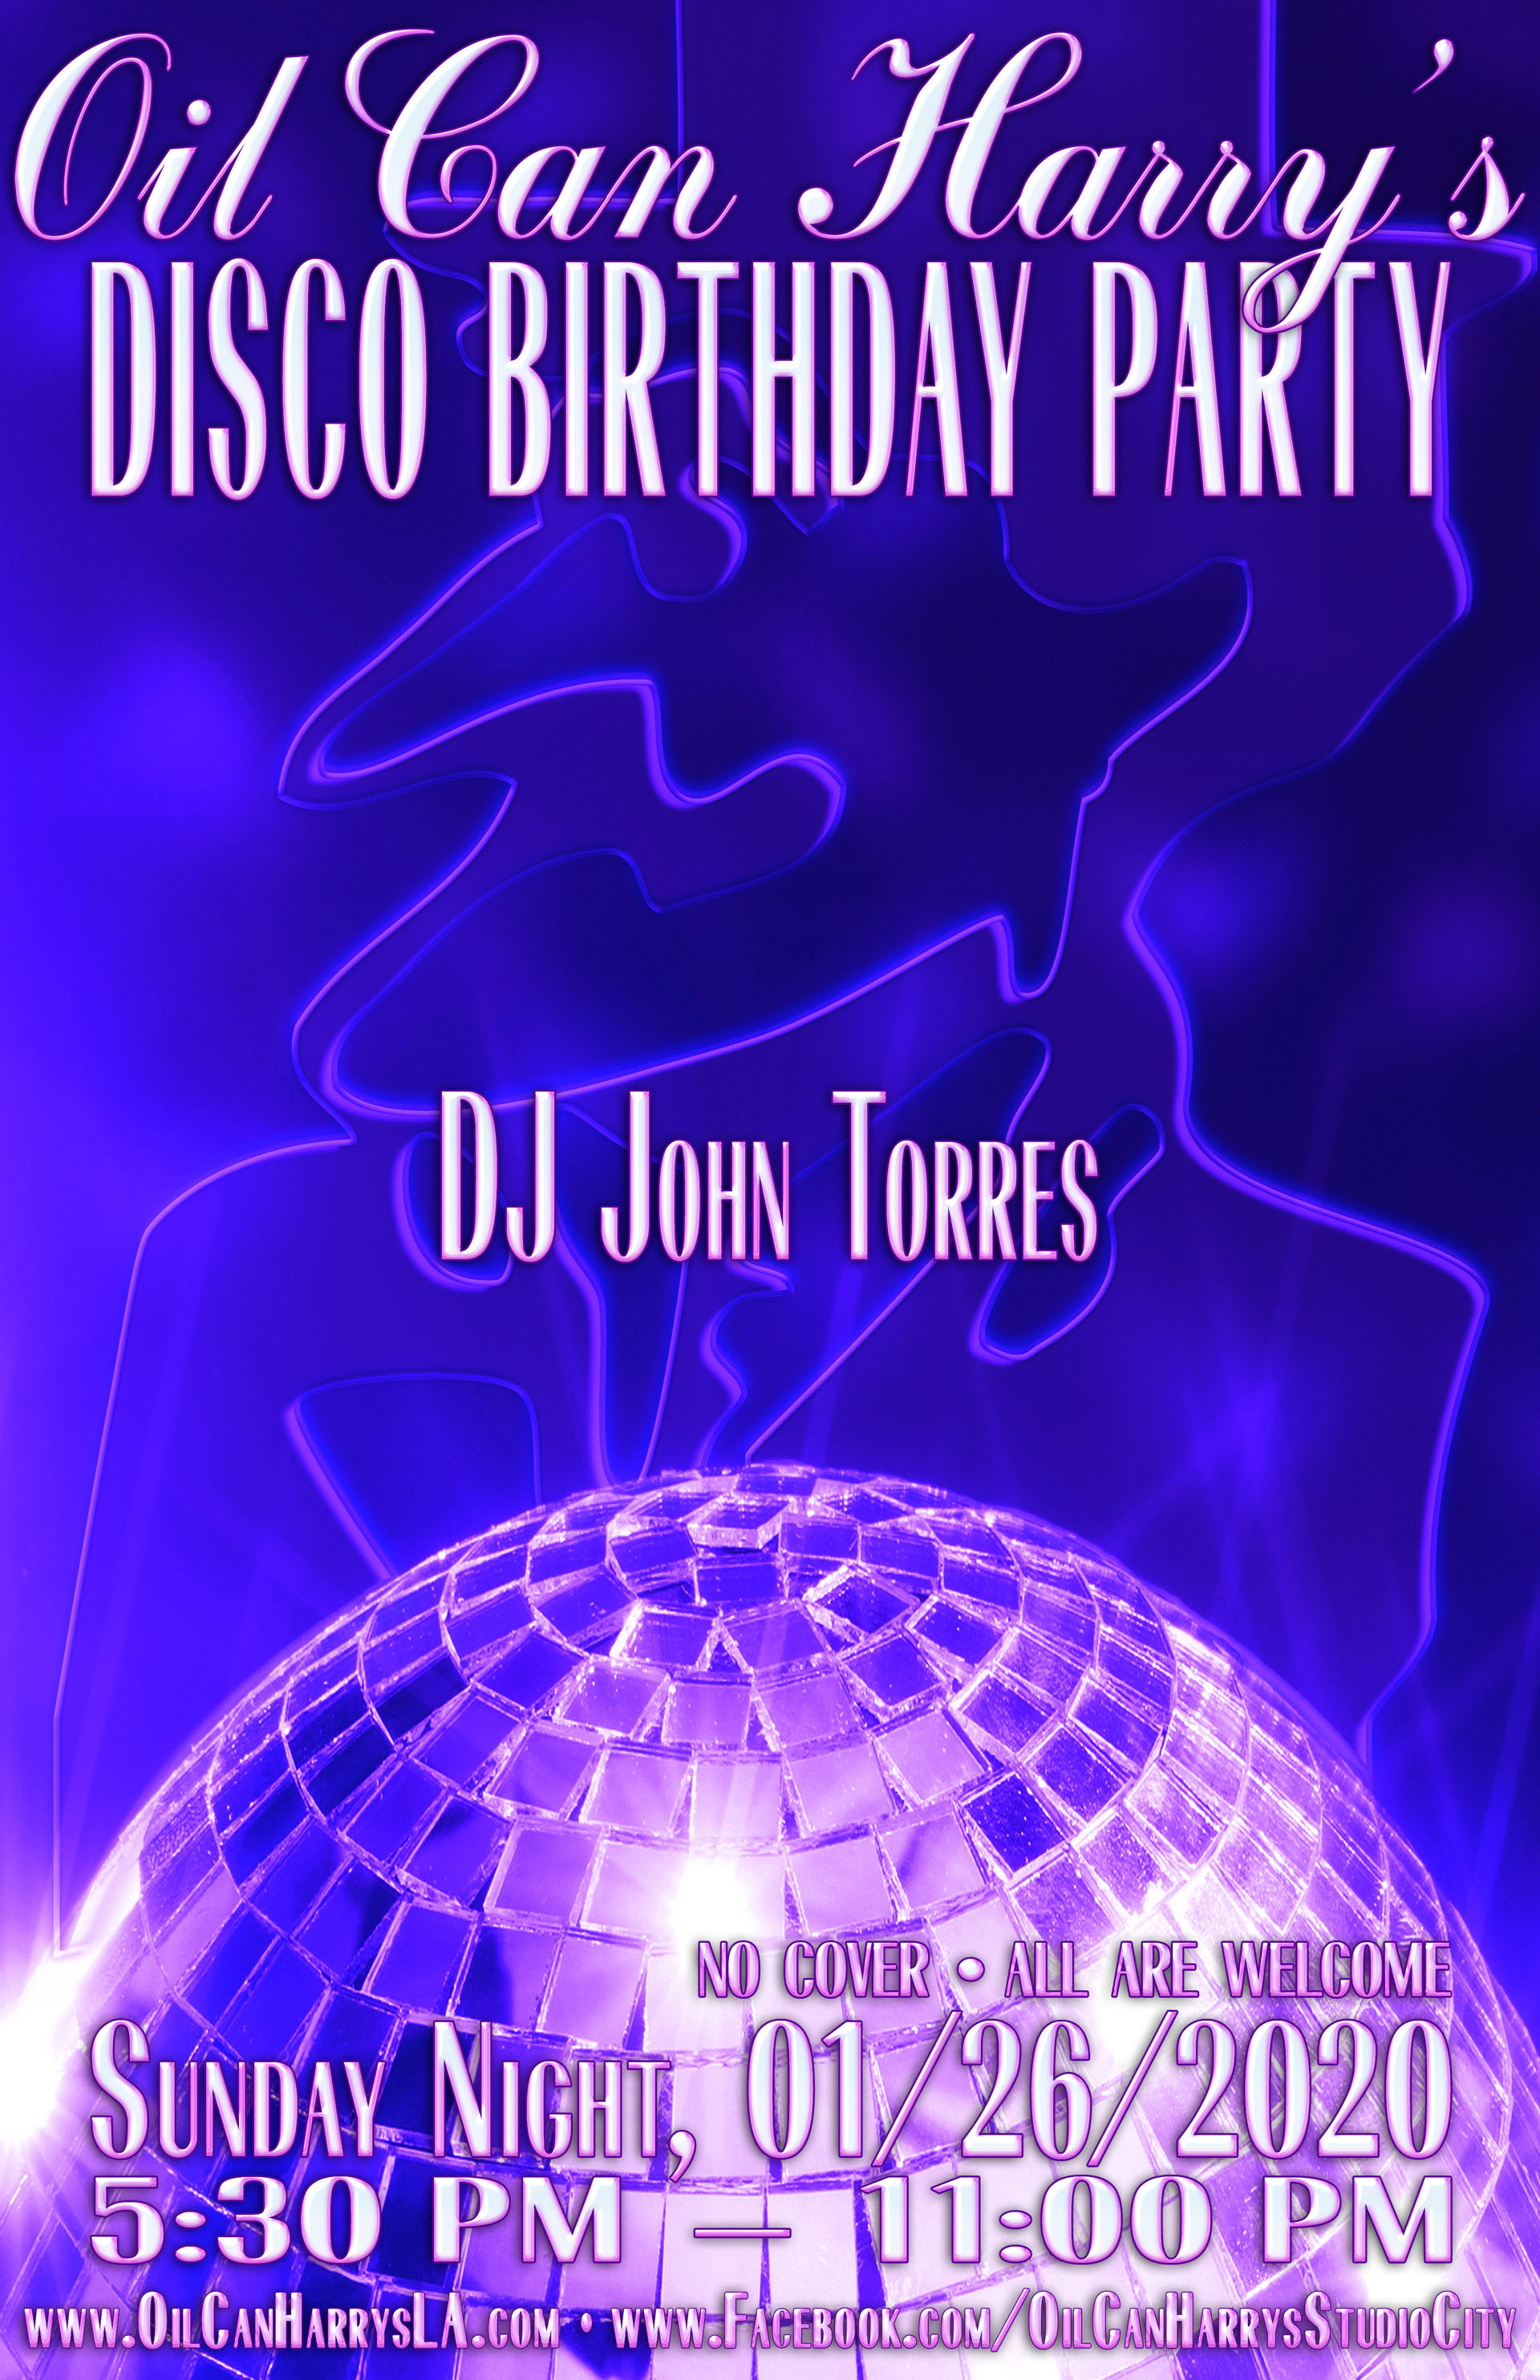 Oil Can Harry's Presents A DISCO BIRTHDAY PARTY: Sunday, January 26, 2020: 5:30 PM – 11:00 PM. No cover! All are welcome!